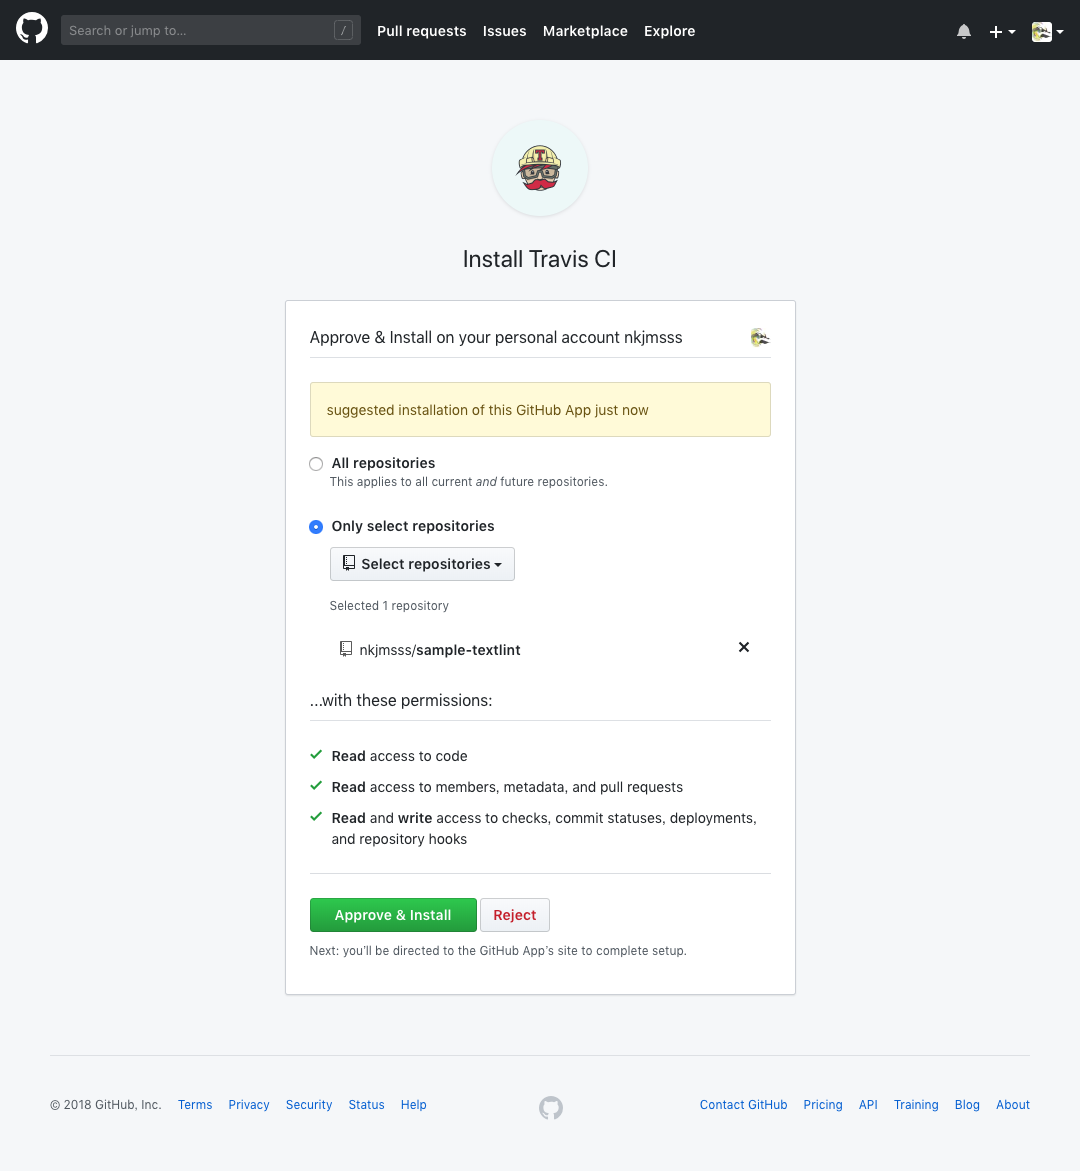 screencapture-github-apps-travis-ci-installations-new-permissions-2018-12-08-16_27_02.png